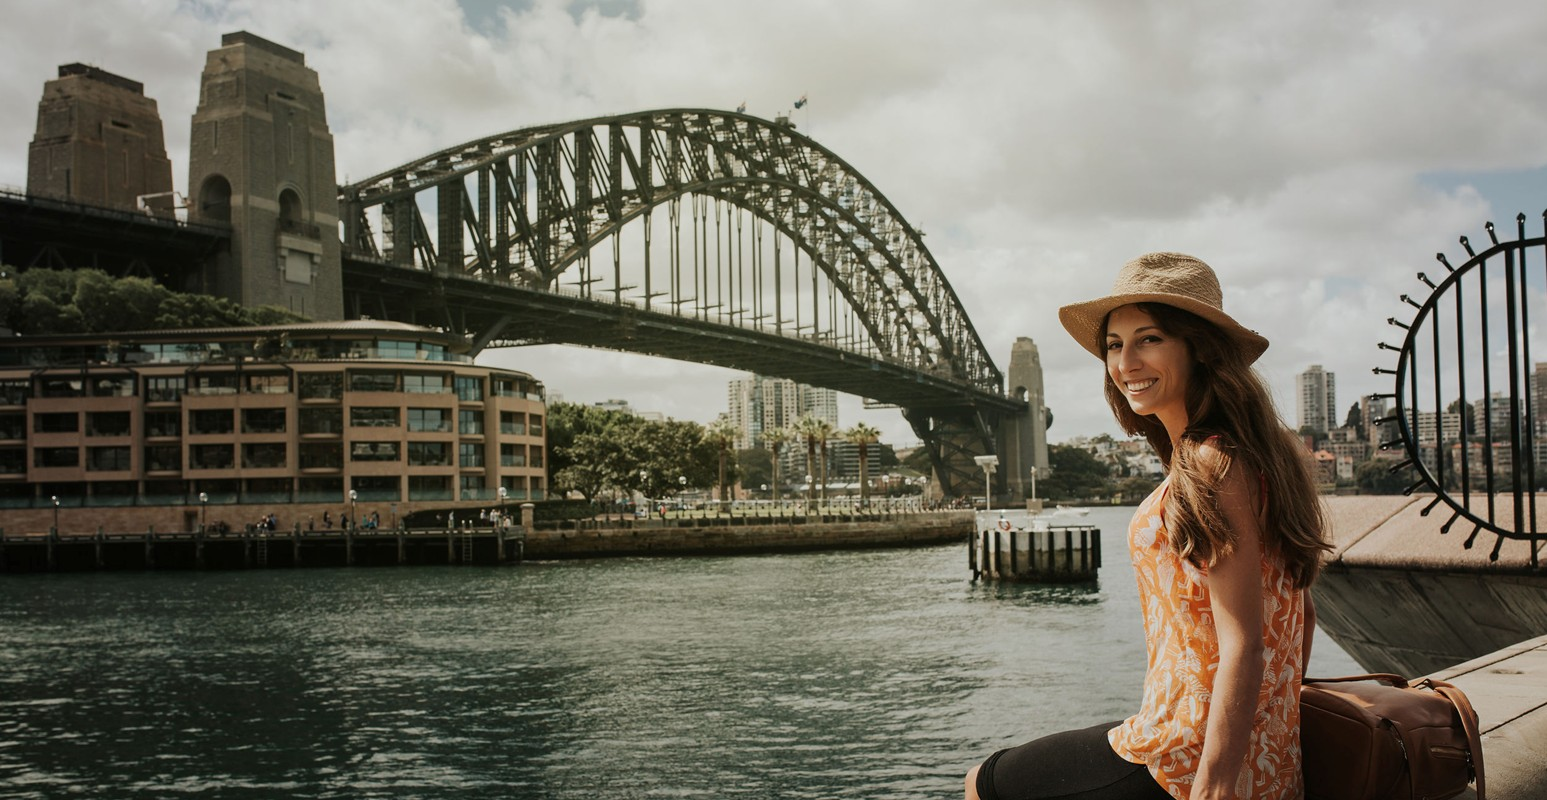 Australia Vacation Packages from Travel Agents in Chicago - Sunset Travel & Cruise, W Fullerton Ave 60614